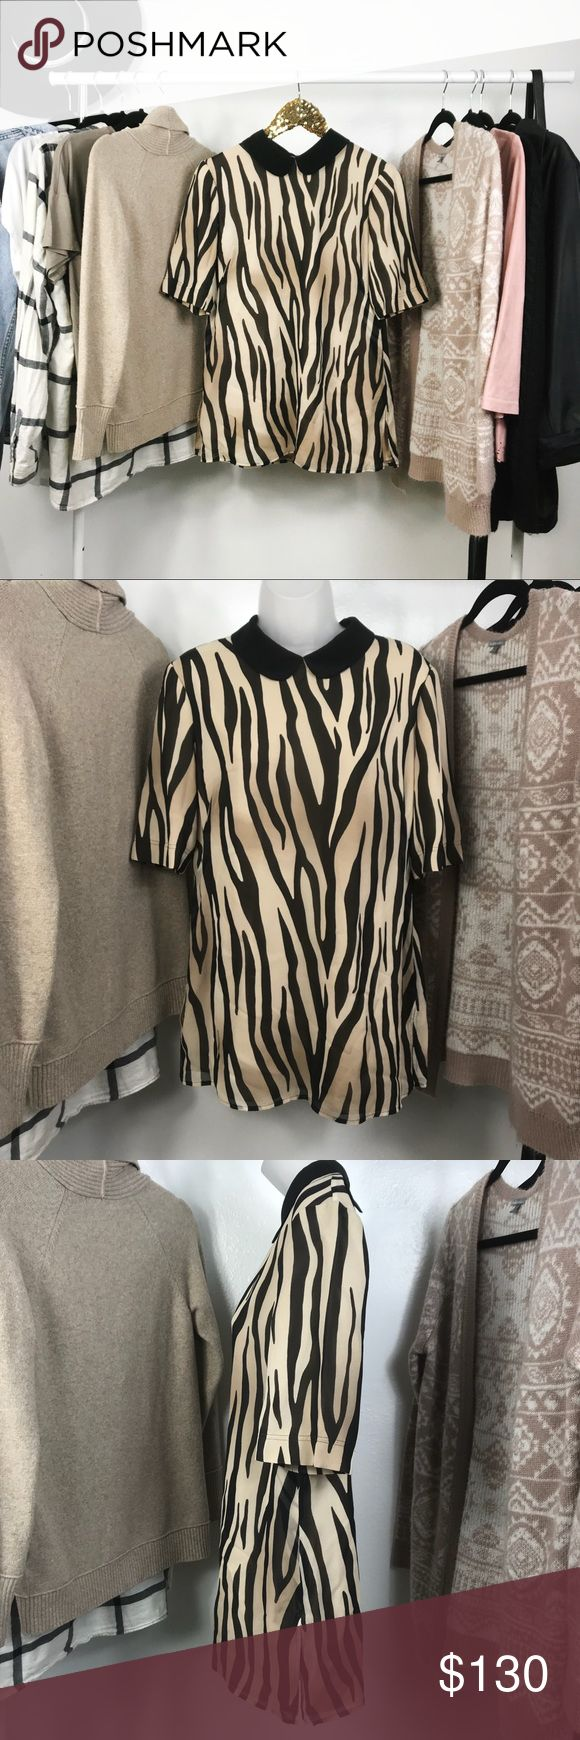 St.John | Silk Animal Print Blouse size 8 In perfect pre loved condition! A gorgeous silk top. Has been dry cleaned. Beautifully double layered with a zebra print. Has a zipper in the back that is really discreet. A gorgeous black collar. An overall gorgeous well made Blouse! St. John Tops Blouses